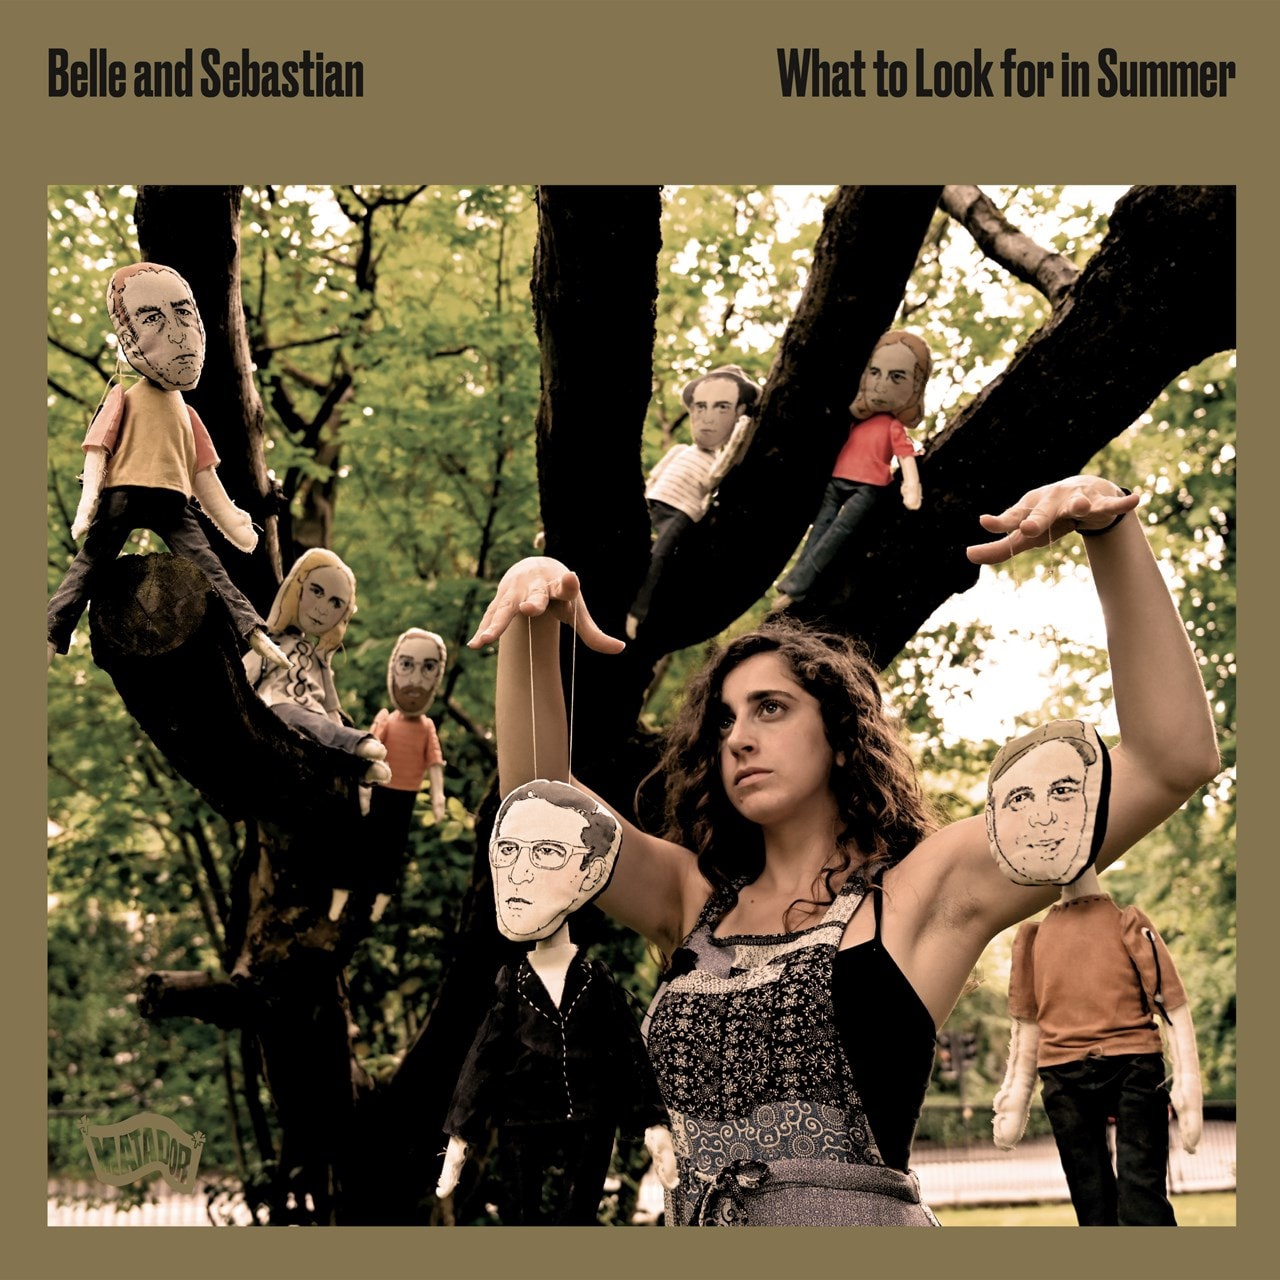 BELLE AND SEBASTIAN - WHAT TO LOOK FOR IN SUMMER [COMPACT DISC]